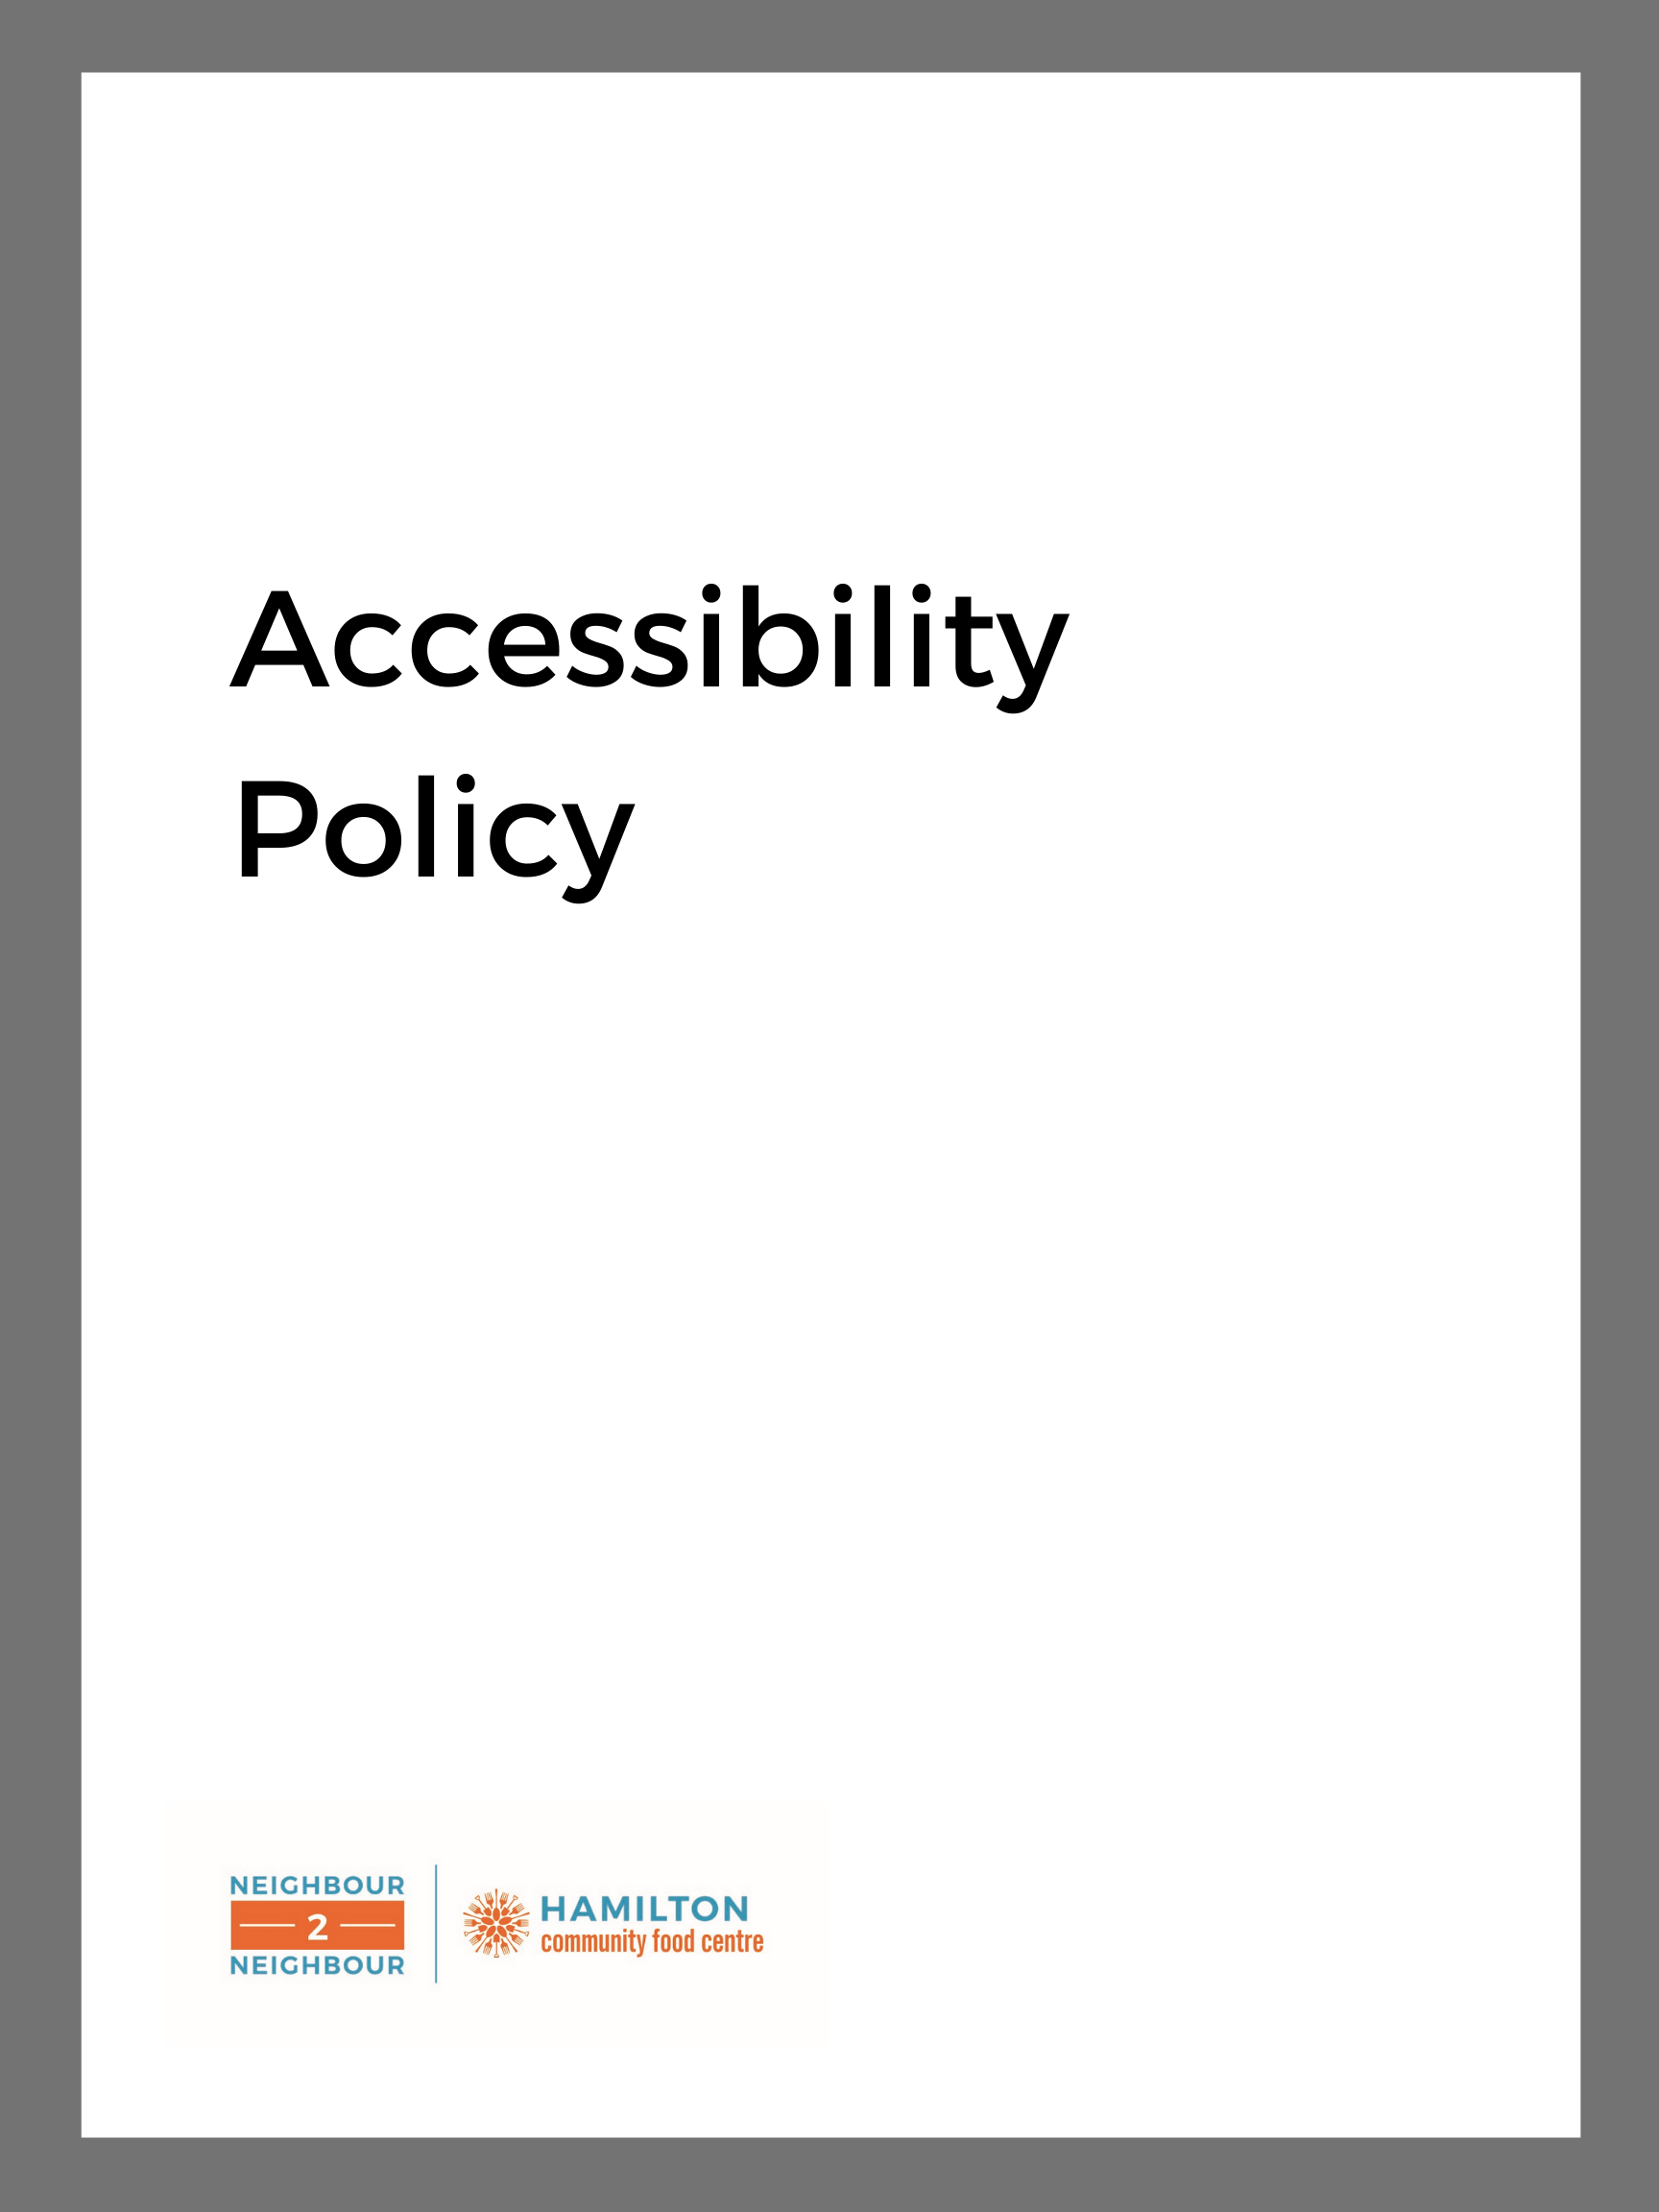 image of: Accessibility Policy